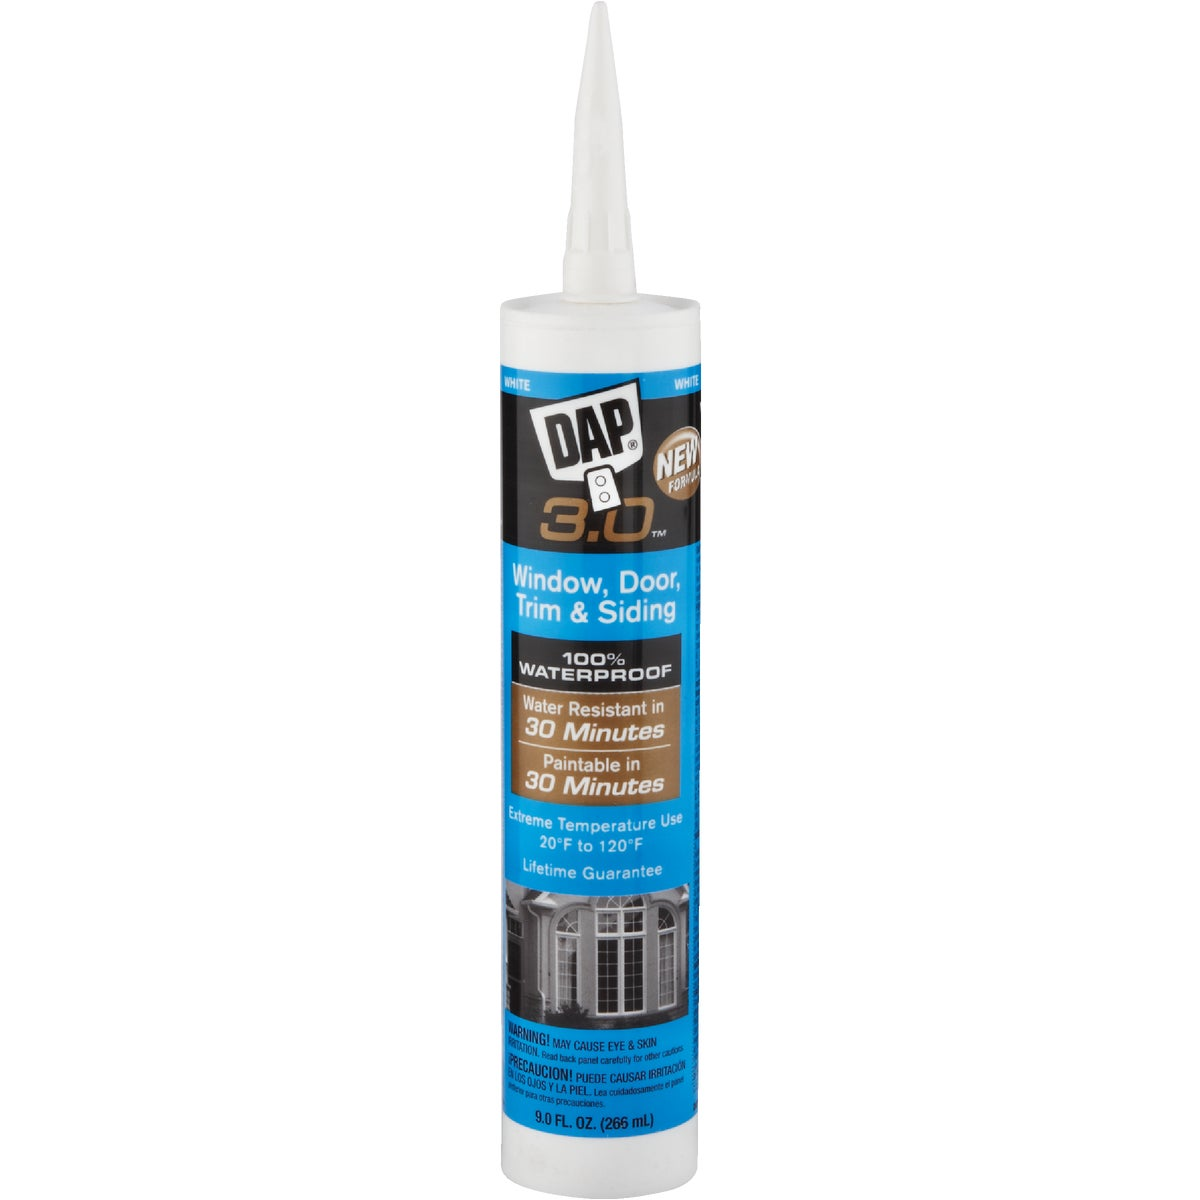 WHITE ALL PURPOSE CAULK - 18360 by Dap Inc